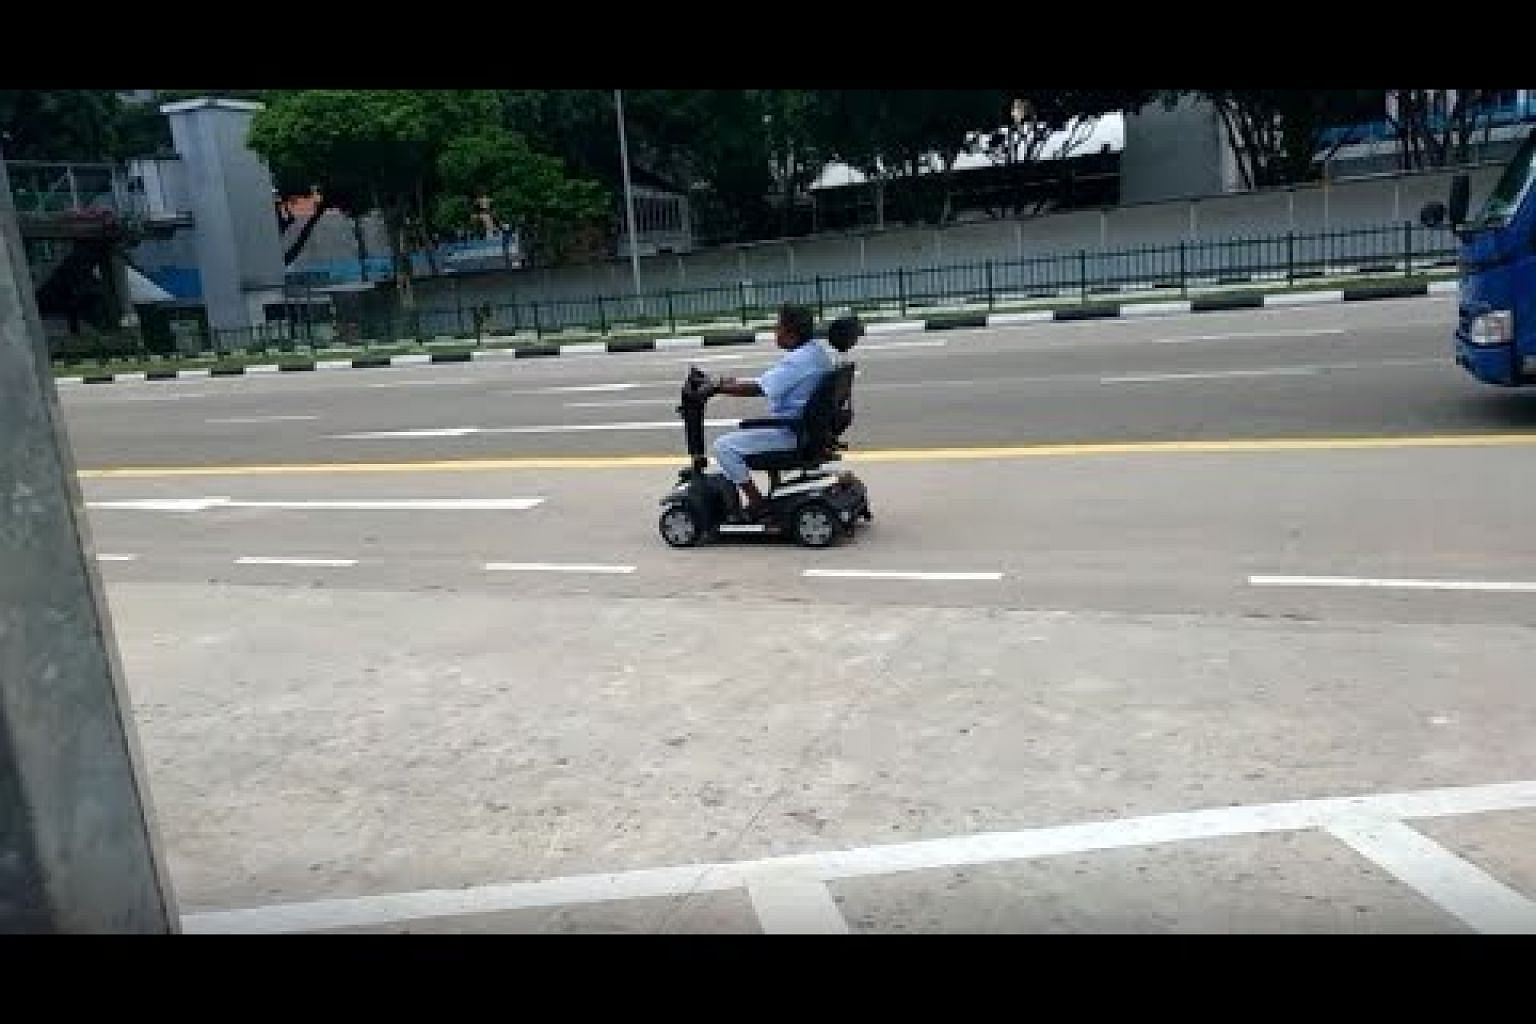 Man dressed in hospital gown seen using PMA on Eu Tong Sen Street near SGH